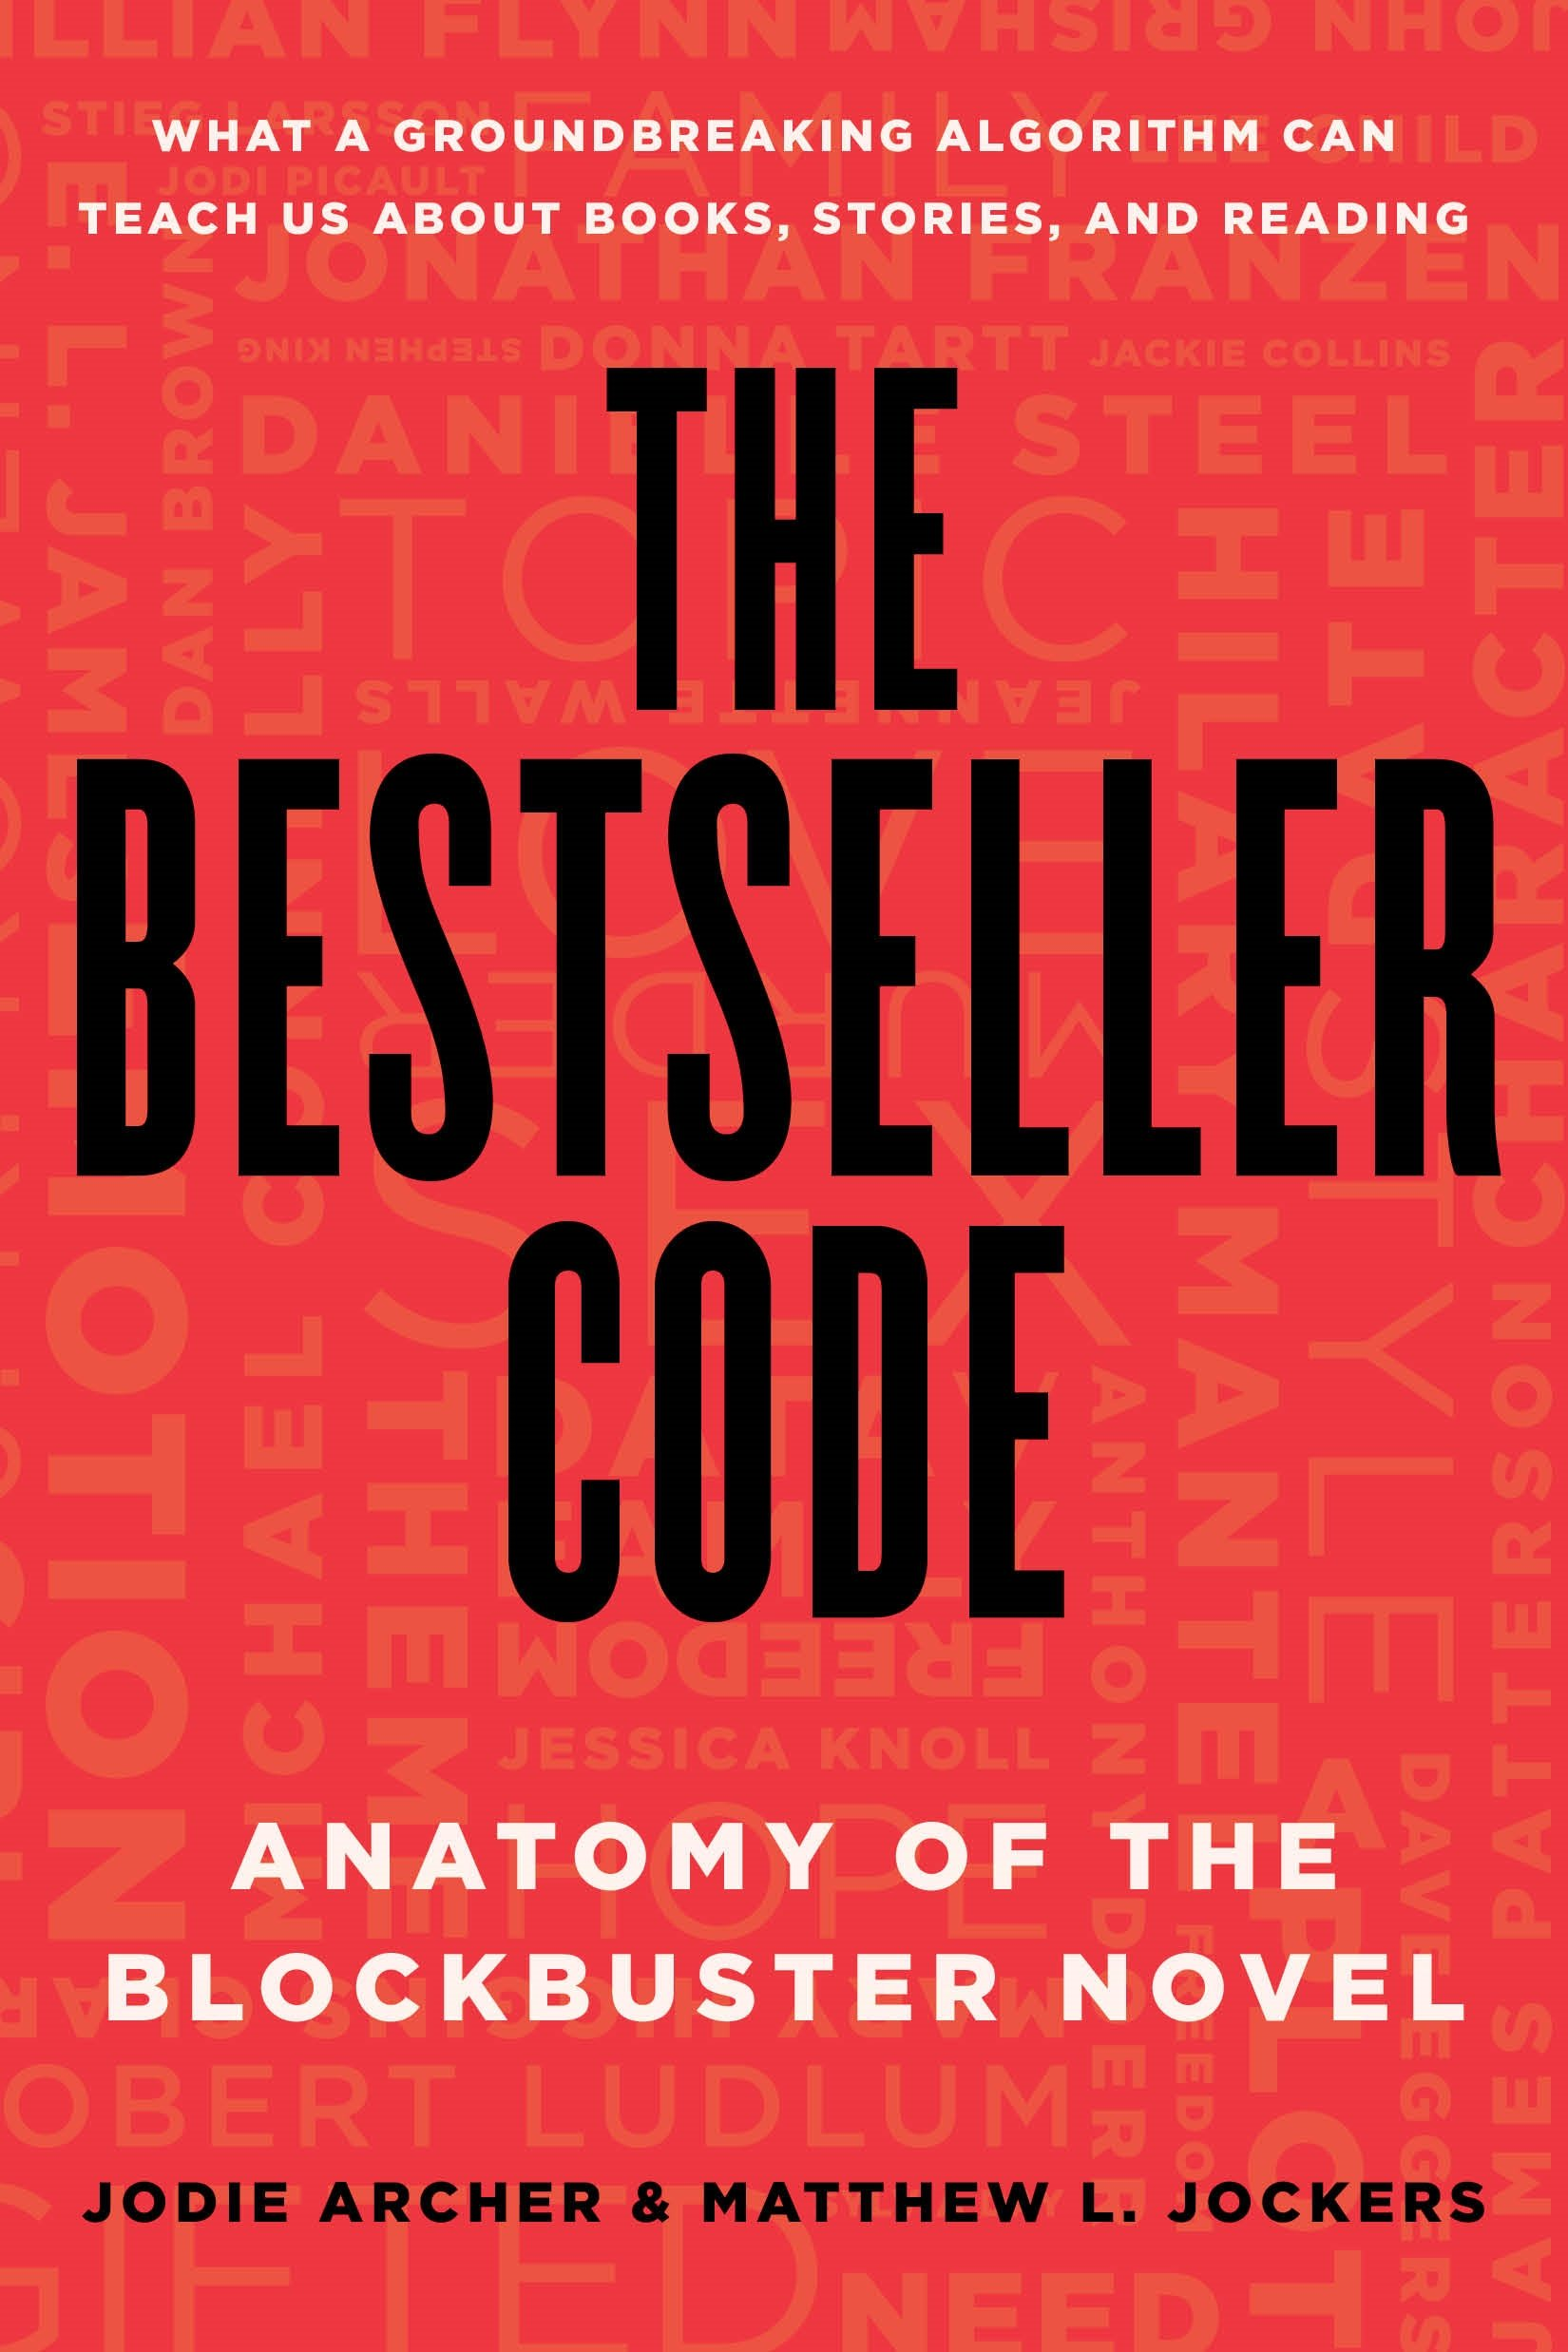 The bestseller code anatomy of the blockbuster novel jodie the bestseller code anatomy of the blockbuster novel jodie archer matthew l jockers 9781250088277 amazon books fandeluxe Choice Image